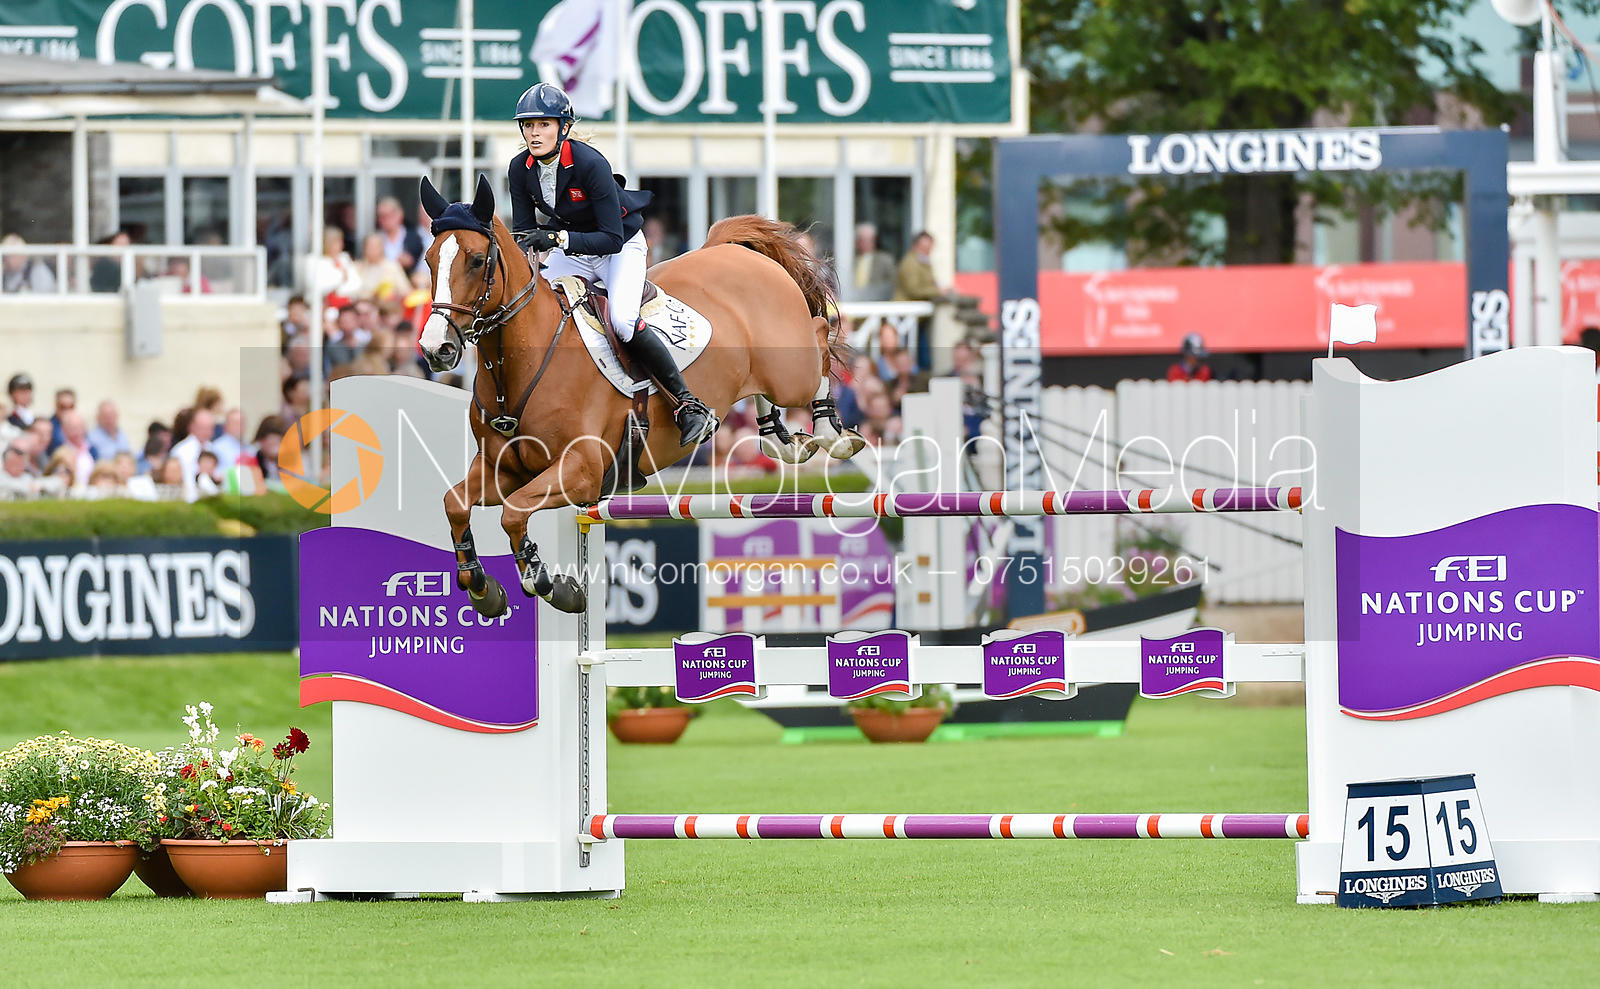 Jessica Mendoza and TOY BOY - FEI Nations Cup, Dublin Horse Show 2017